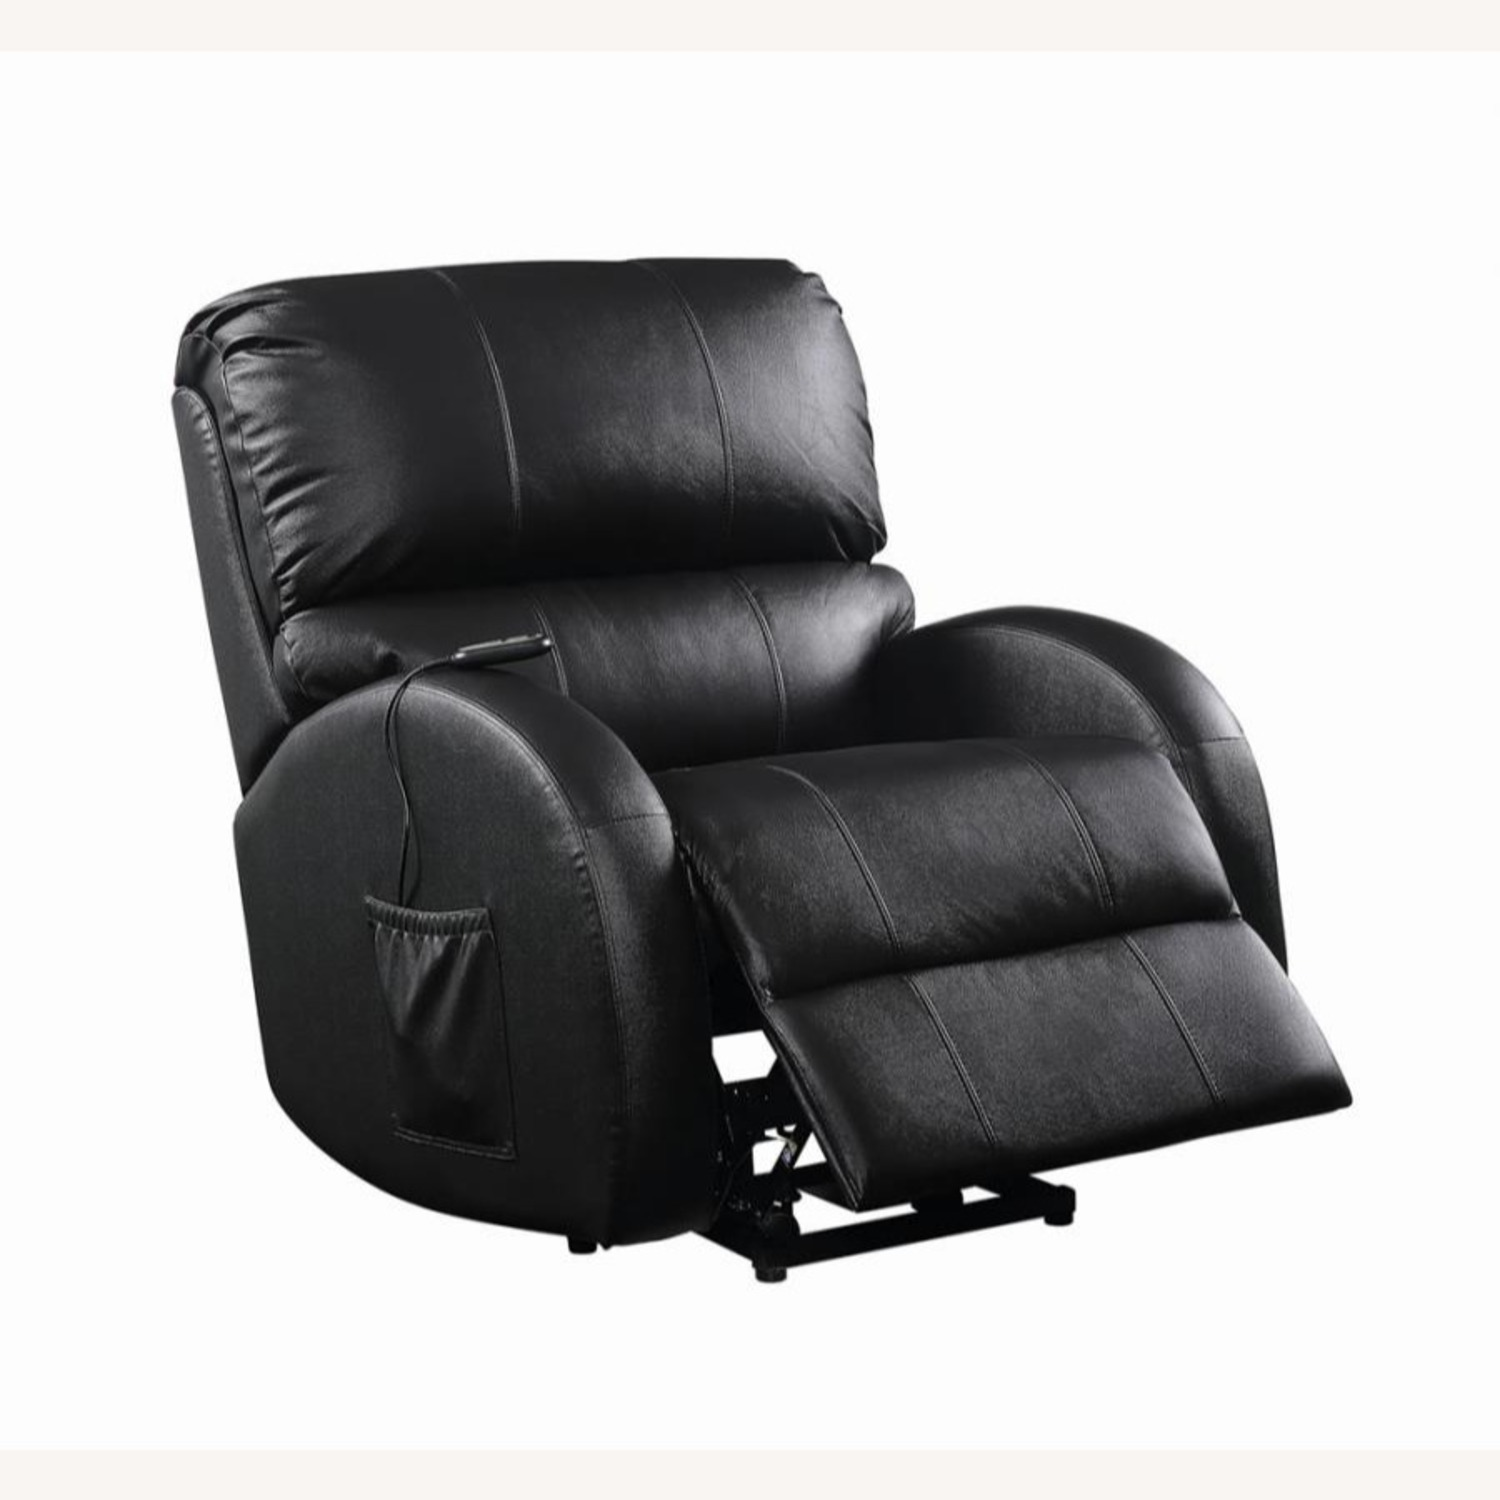 Power Lift Recliner In Black Top Grain Leather - image-1